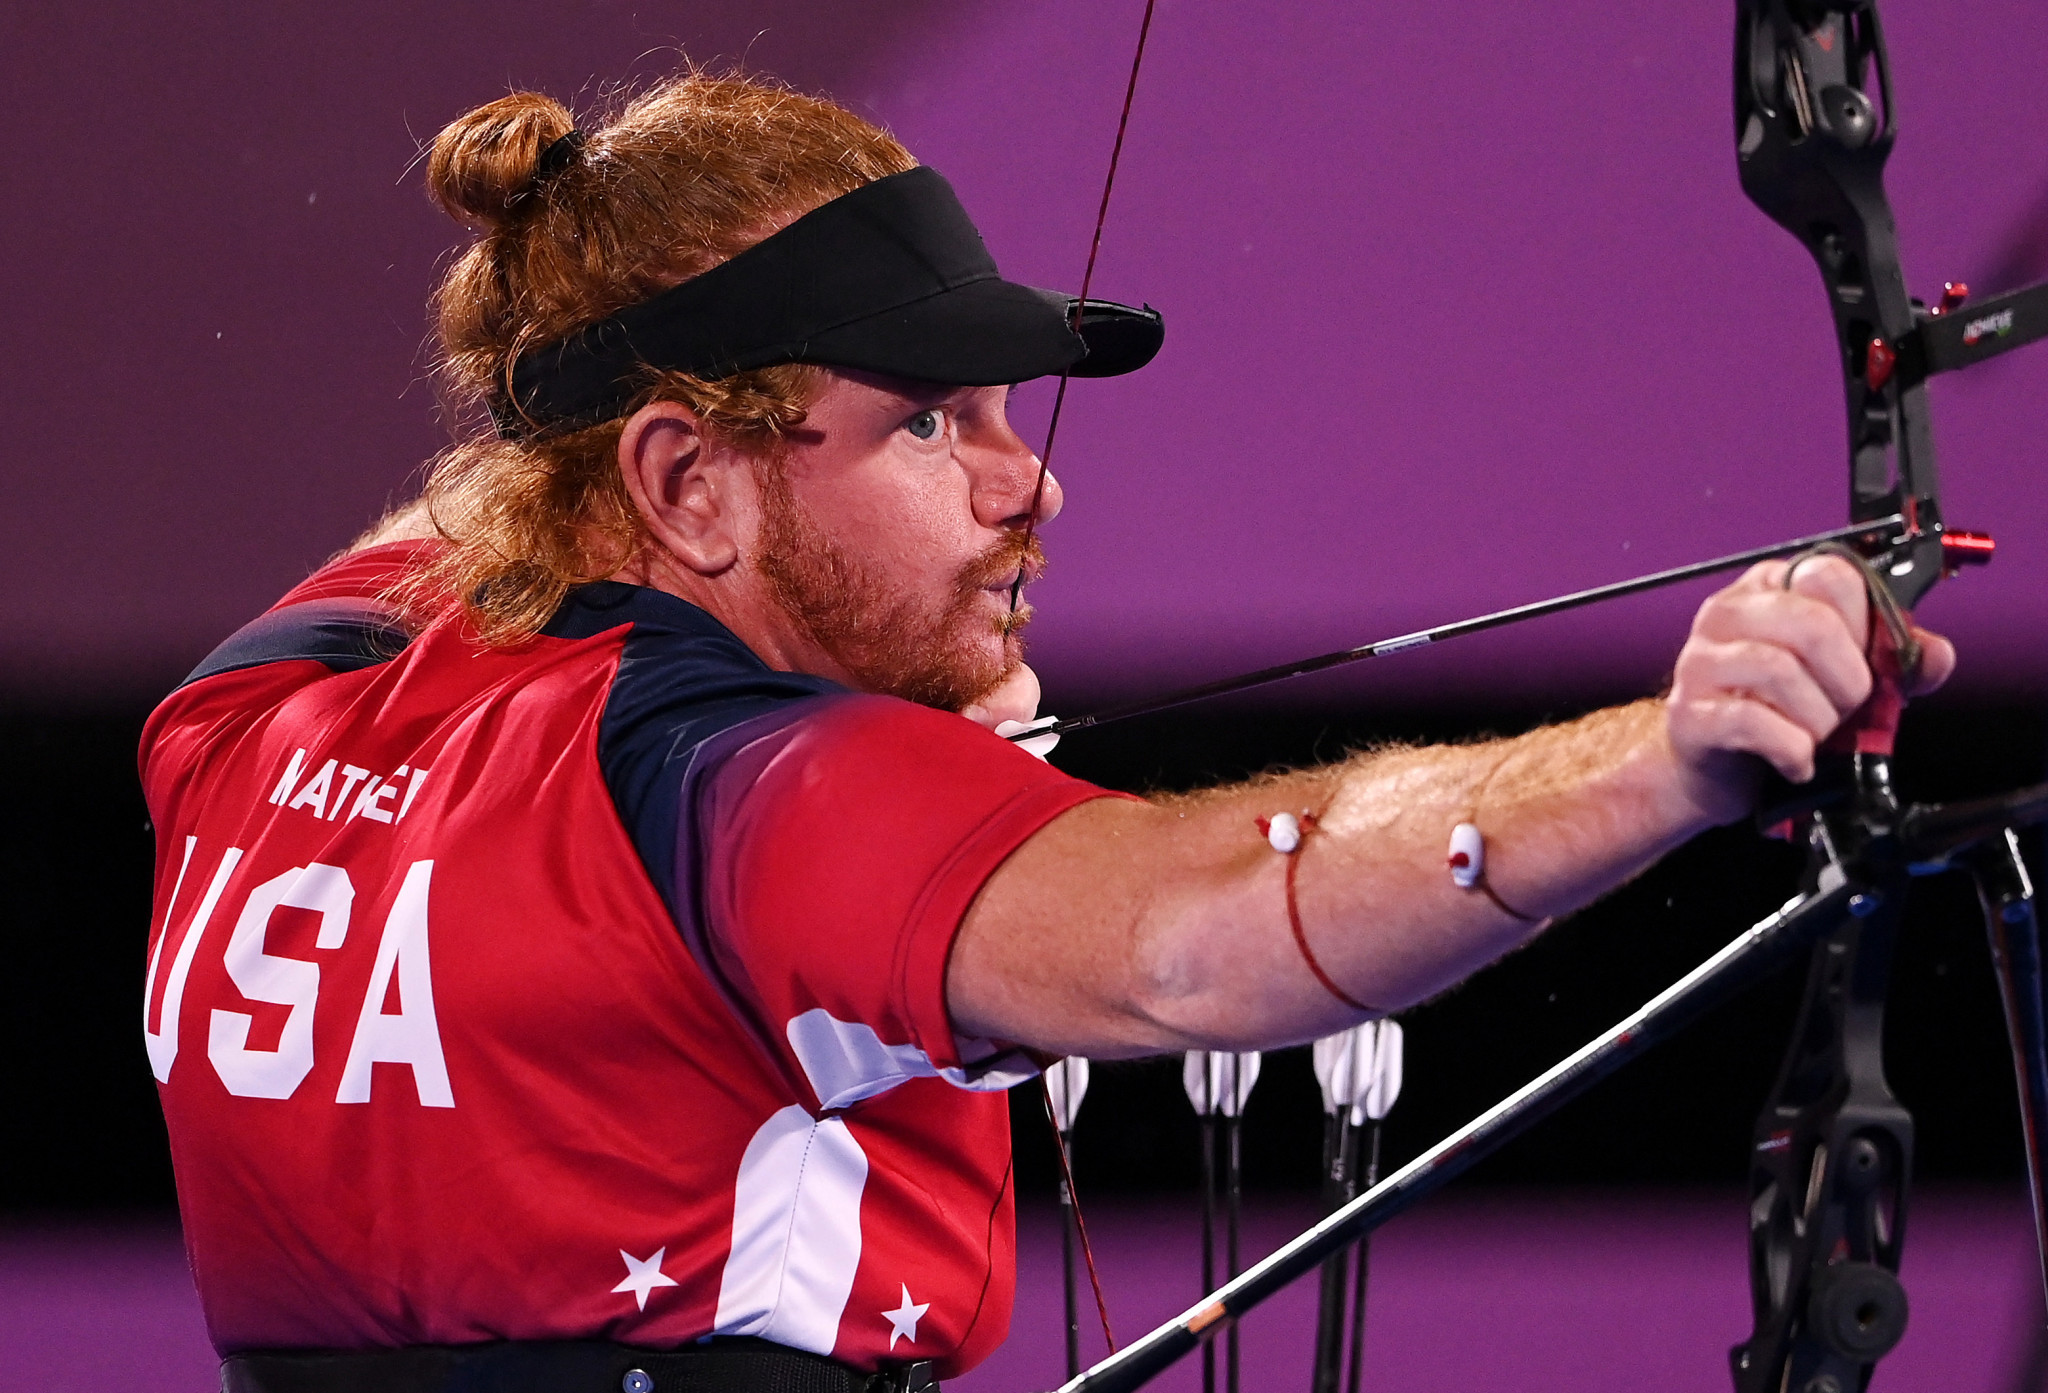 The United States' Kevin Mather earned gold in the men's recurve archery competition ©Getty Images